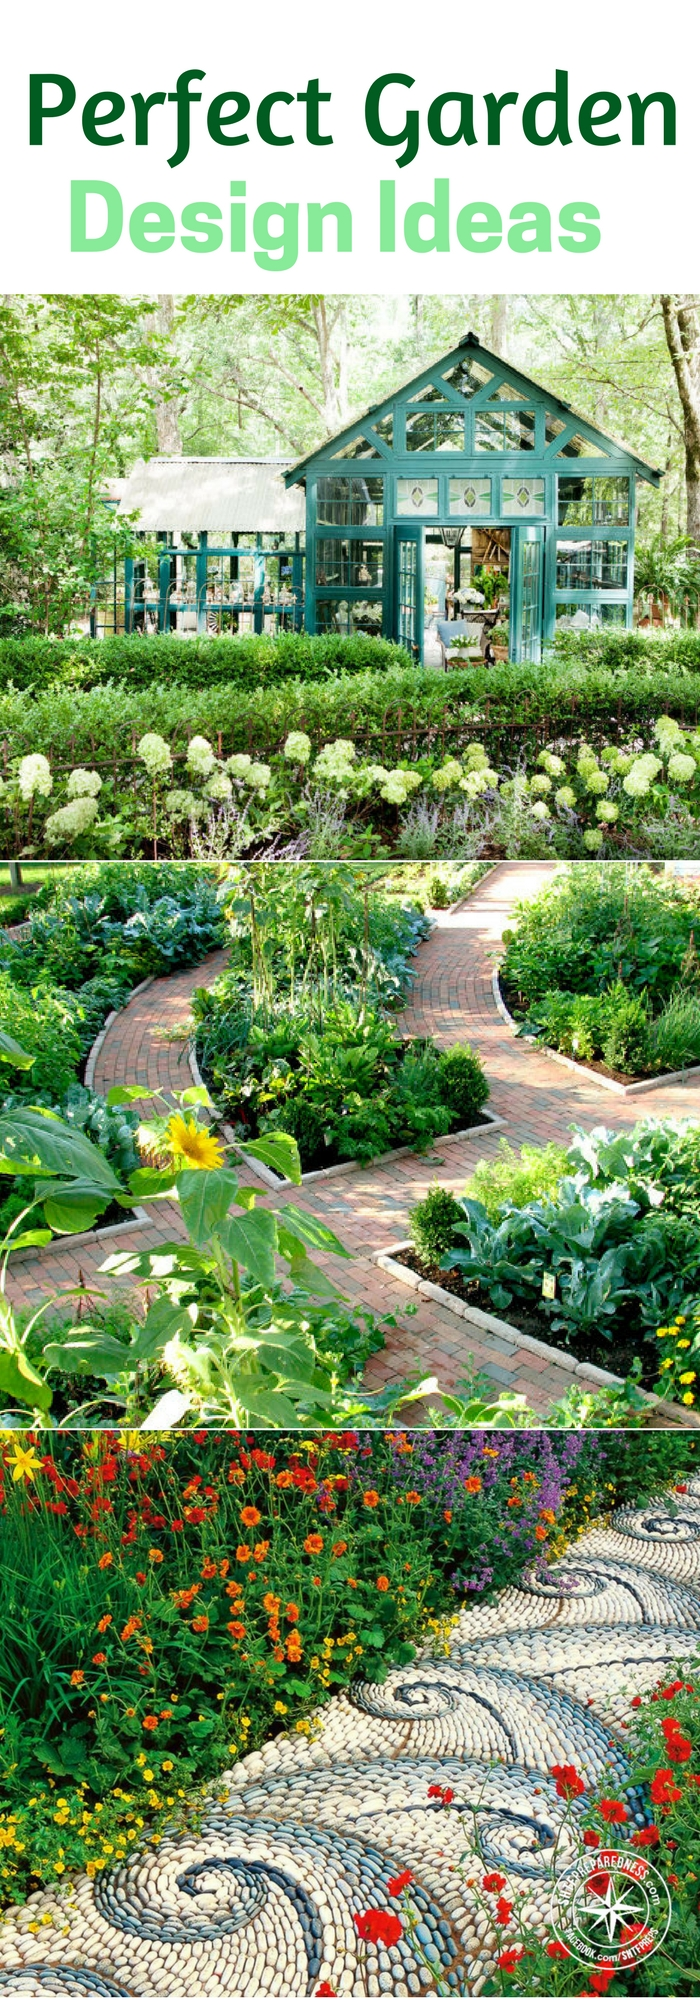 Garden design ideas plan your perfect garden for Food garden ideas